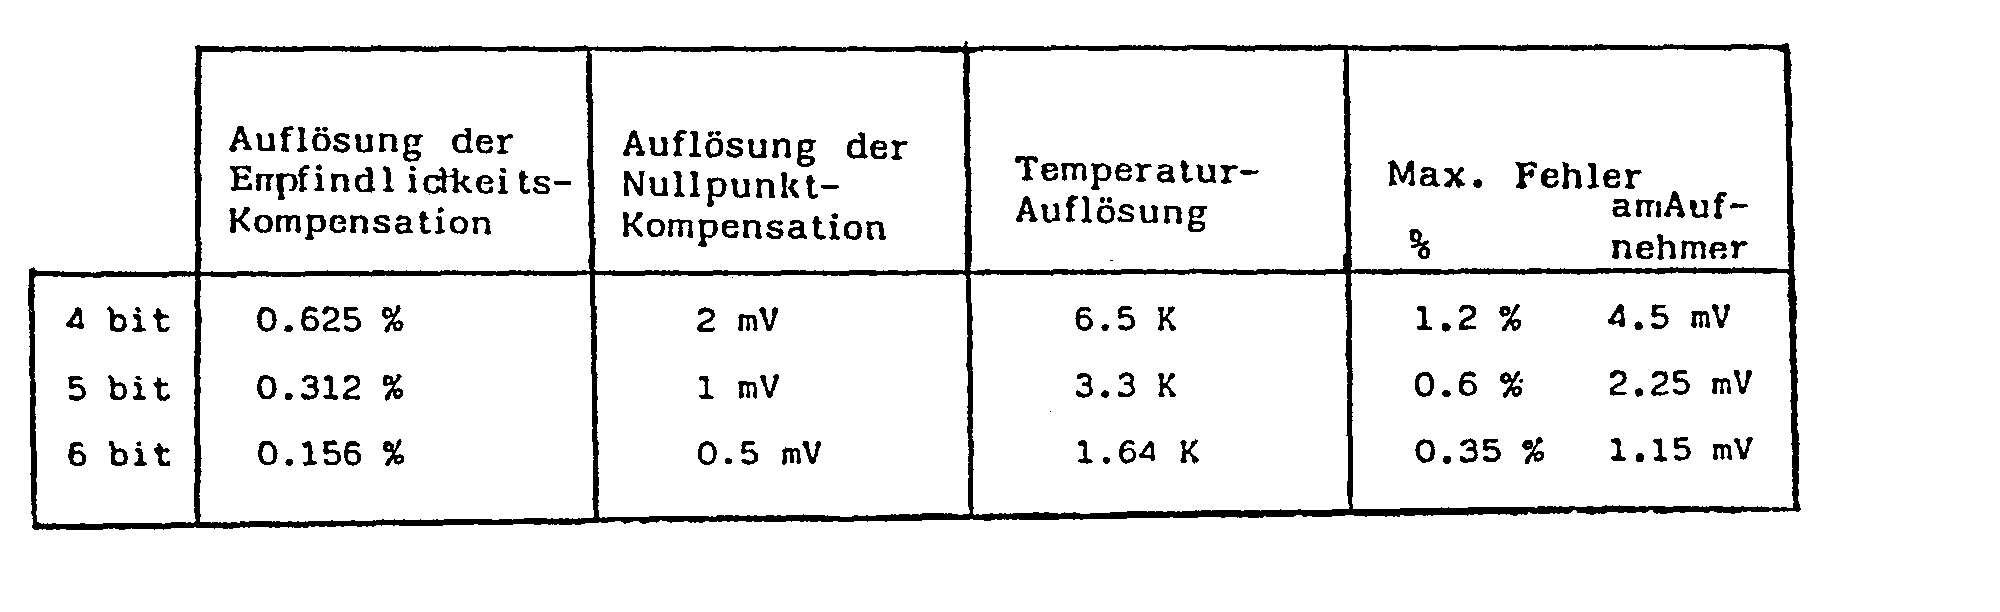 Ep0169414a2 Method For The Temperature Compensation And Measuring Isolated Electric Bridge Measurement Amplifier Circuit Composed Of Improvement In Error Signal Bit 4 5 Or 6 Converter Are Shown Following Table At A Change 100 K